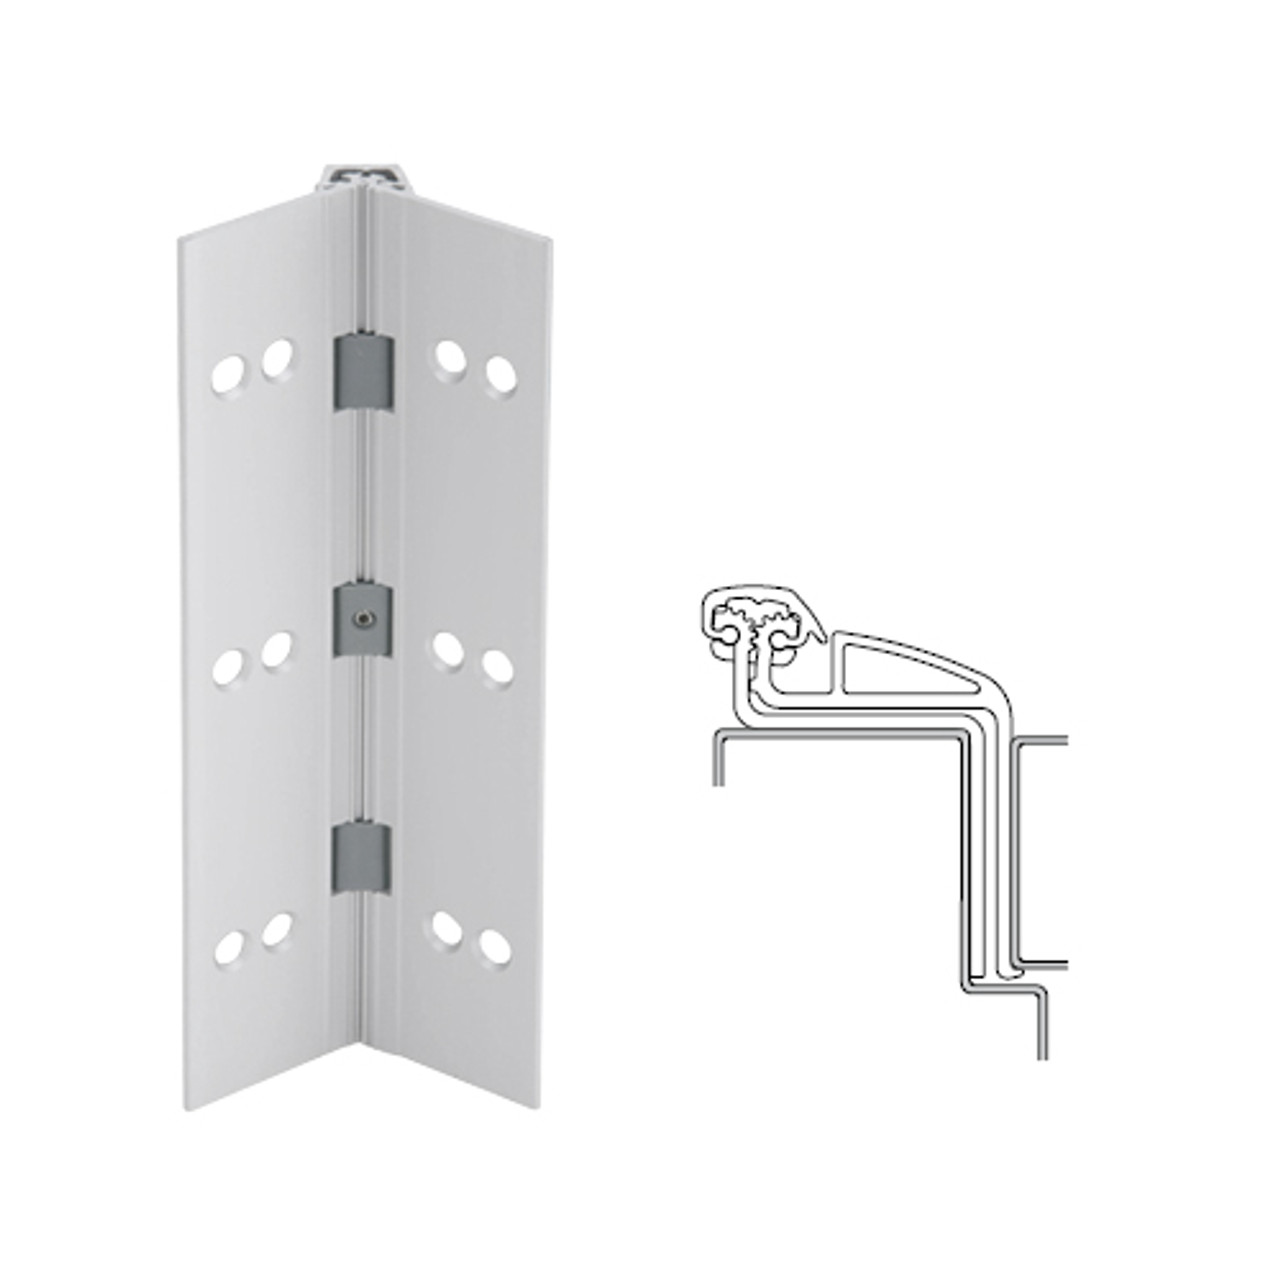 041XY-US28-83-SECWDHM IVES Full Mortise Continuous Geared Hinges with Security Screws - Hex Pin Drive in Satin Aluminum